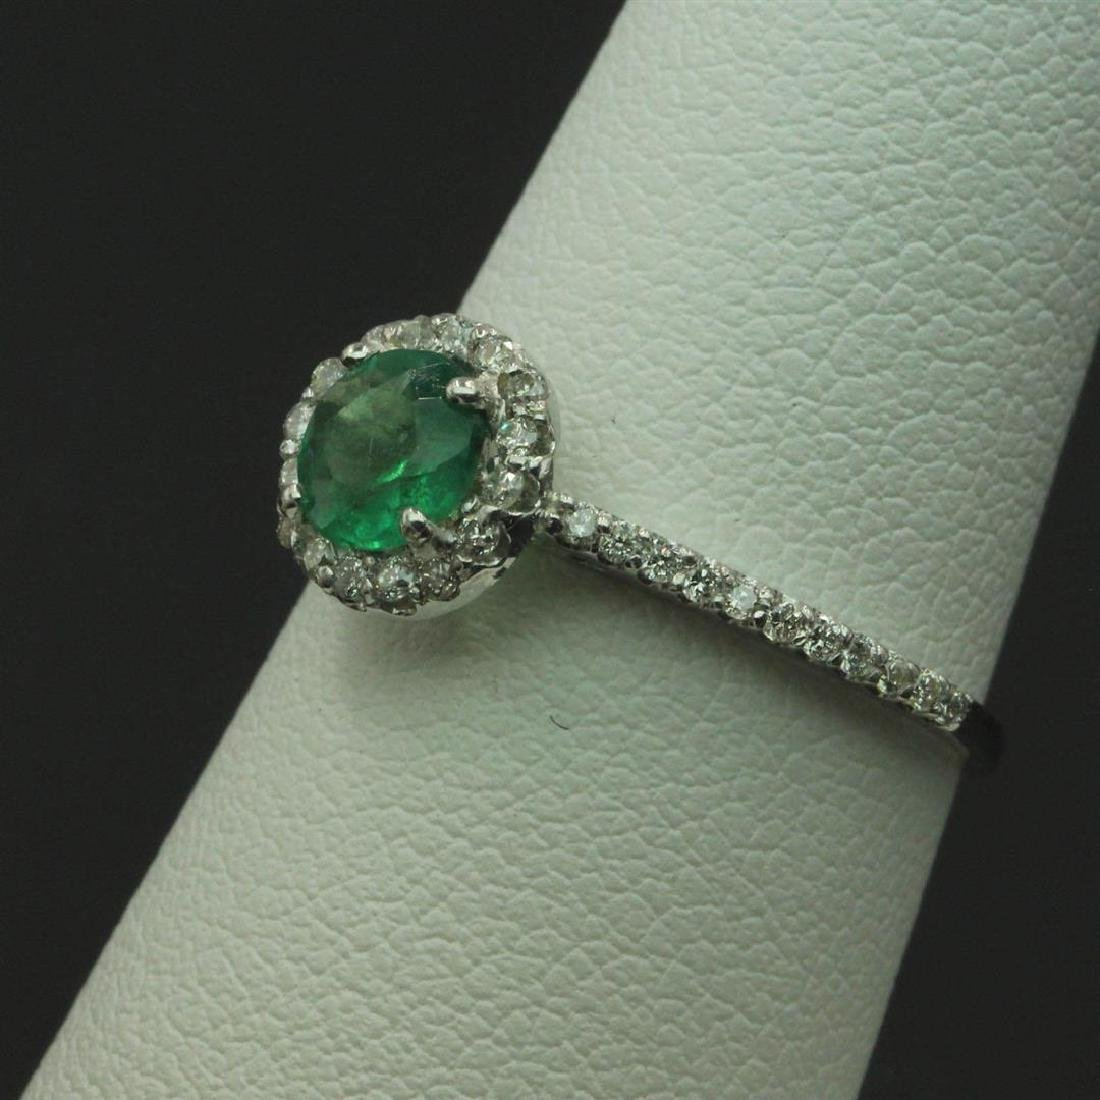 0.57 ctw Emerald and Diamond Ring - 14KT White Gold - 2